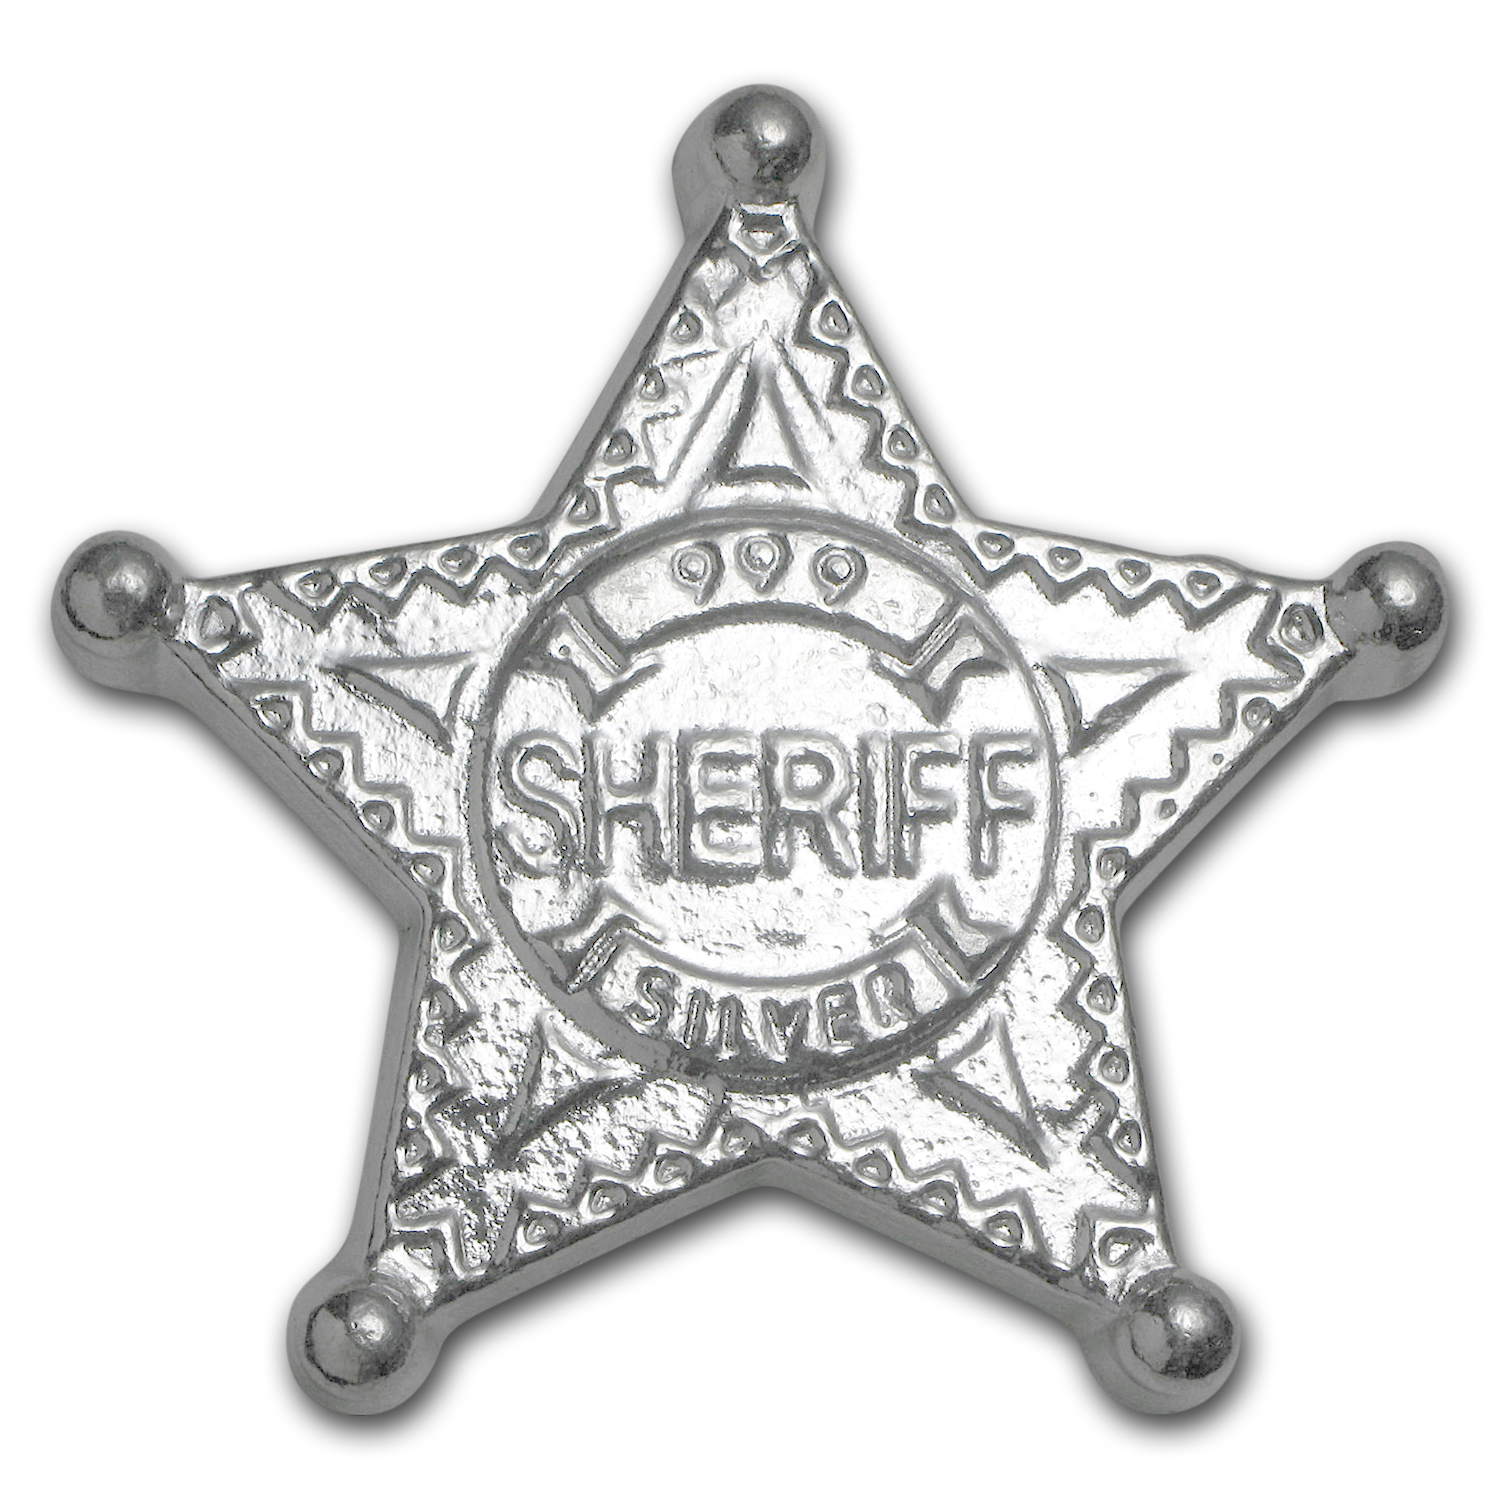 5 oz Silver Bar - Monarch Sheriff Badge